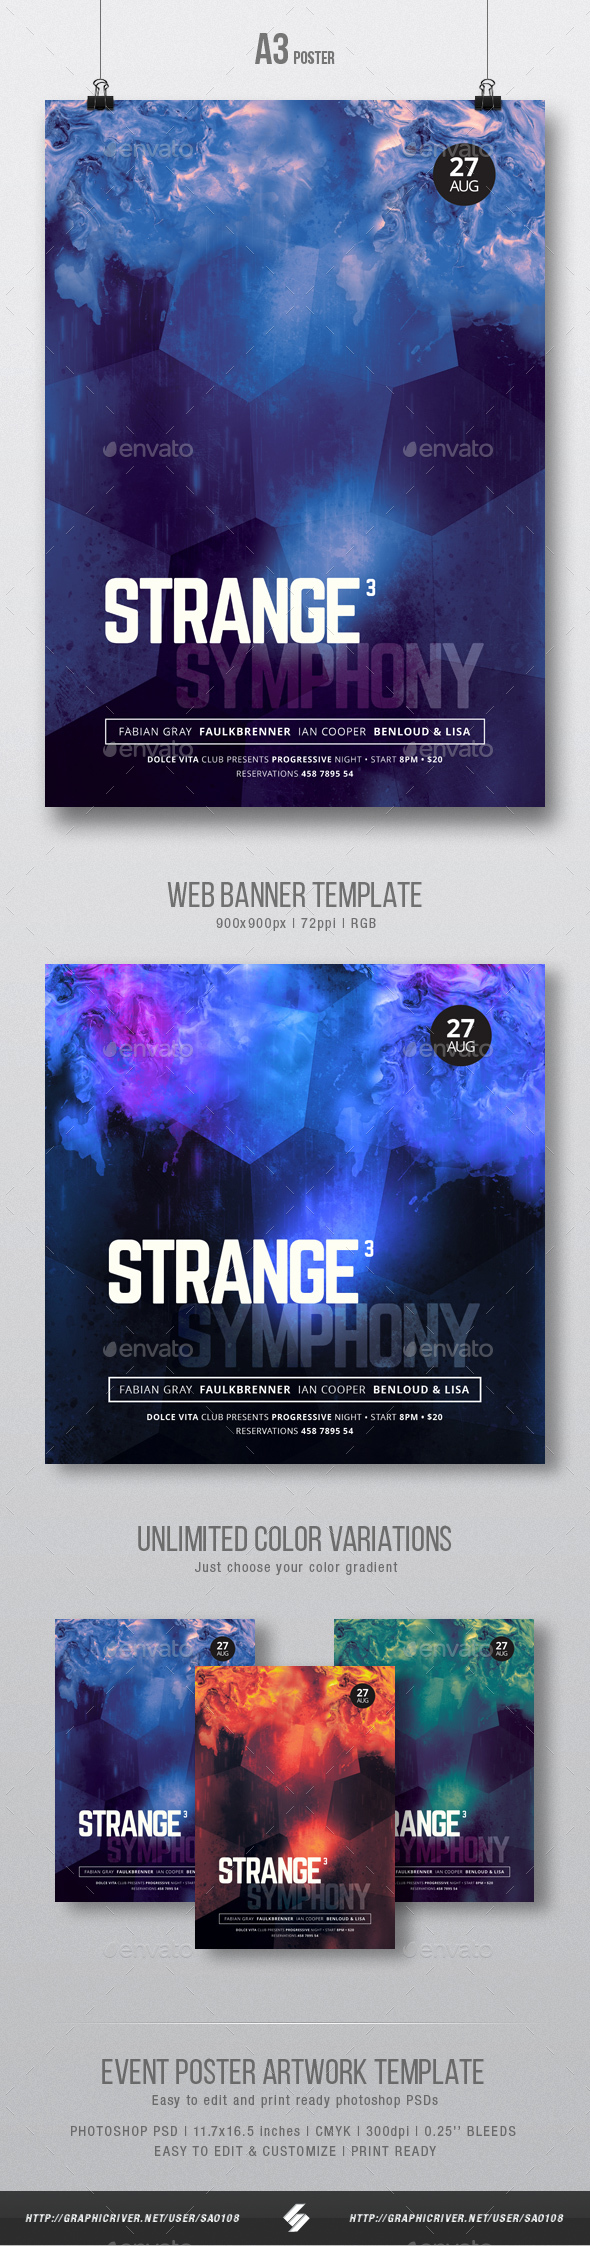 Strange Symphony vol.3 - Progressive Party Flyer / Poster Artwork Template A3 - Clubs & Parties Events